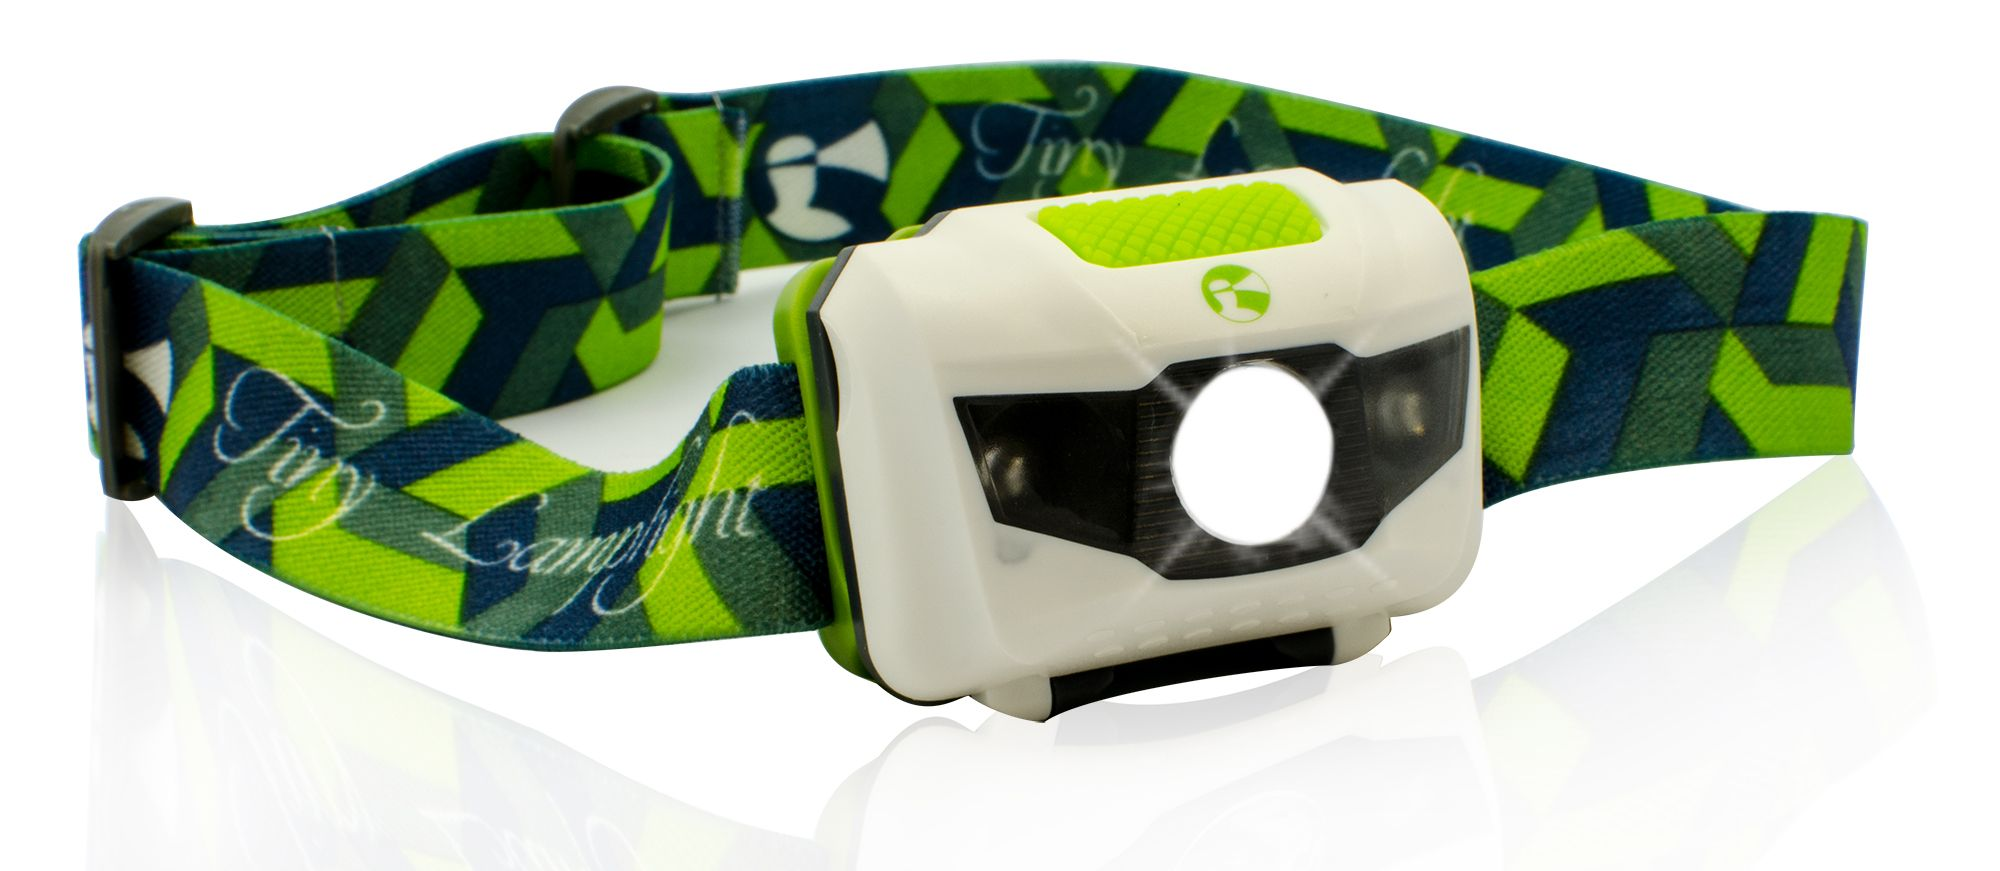 Bright LED Headlamp with Red Light, Batteries Included and